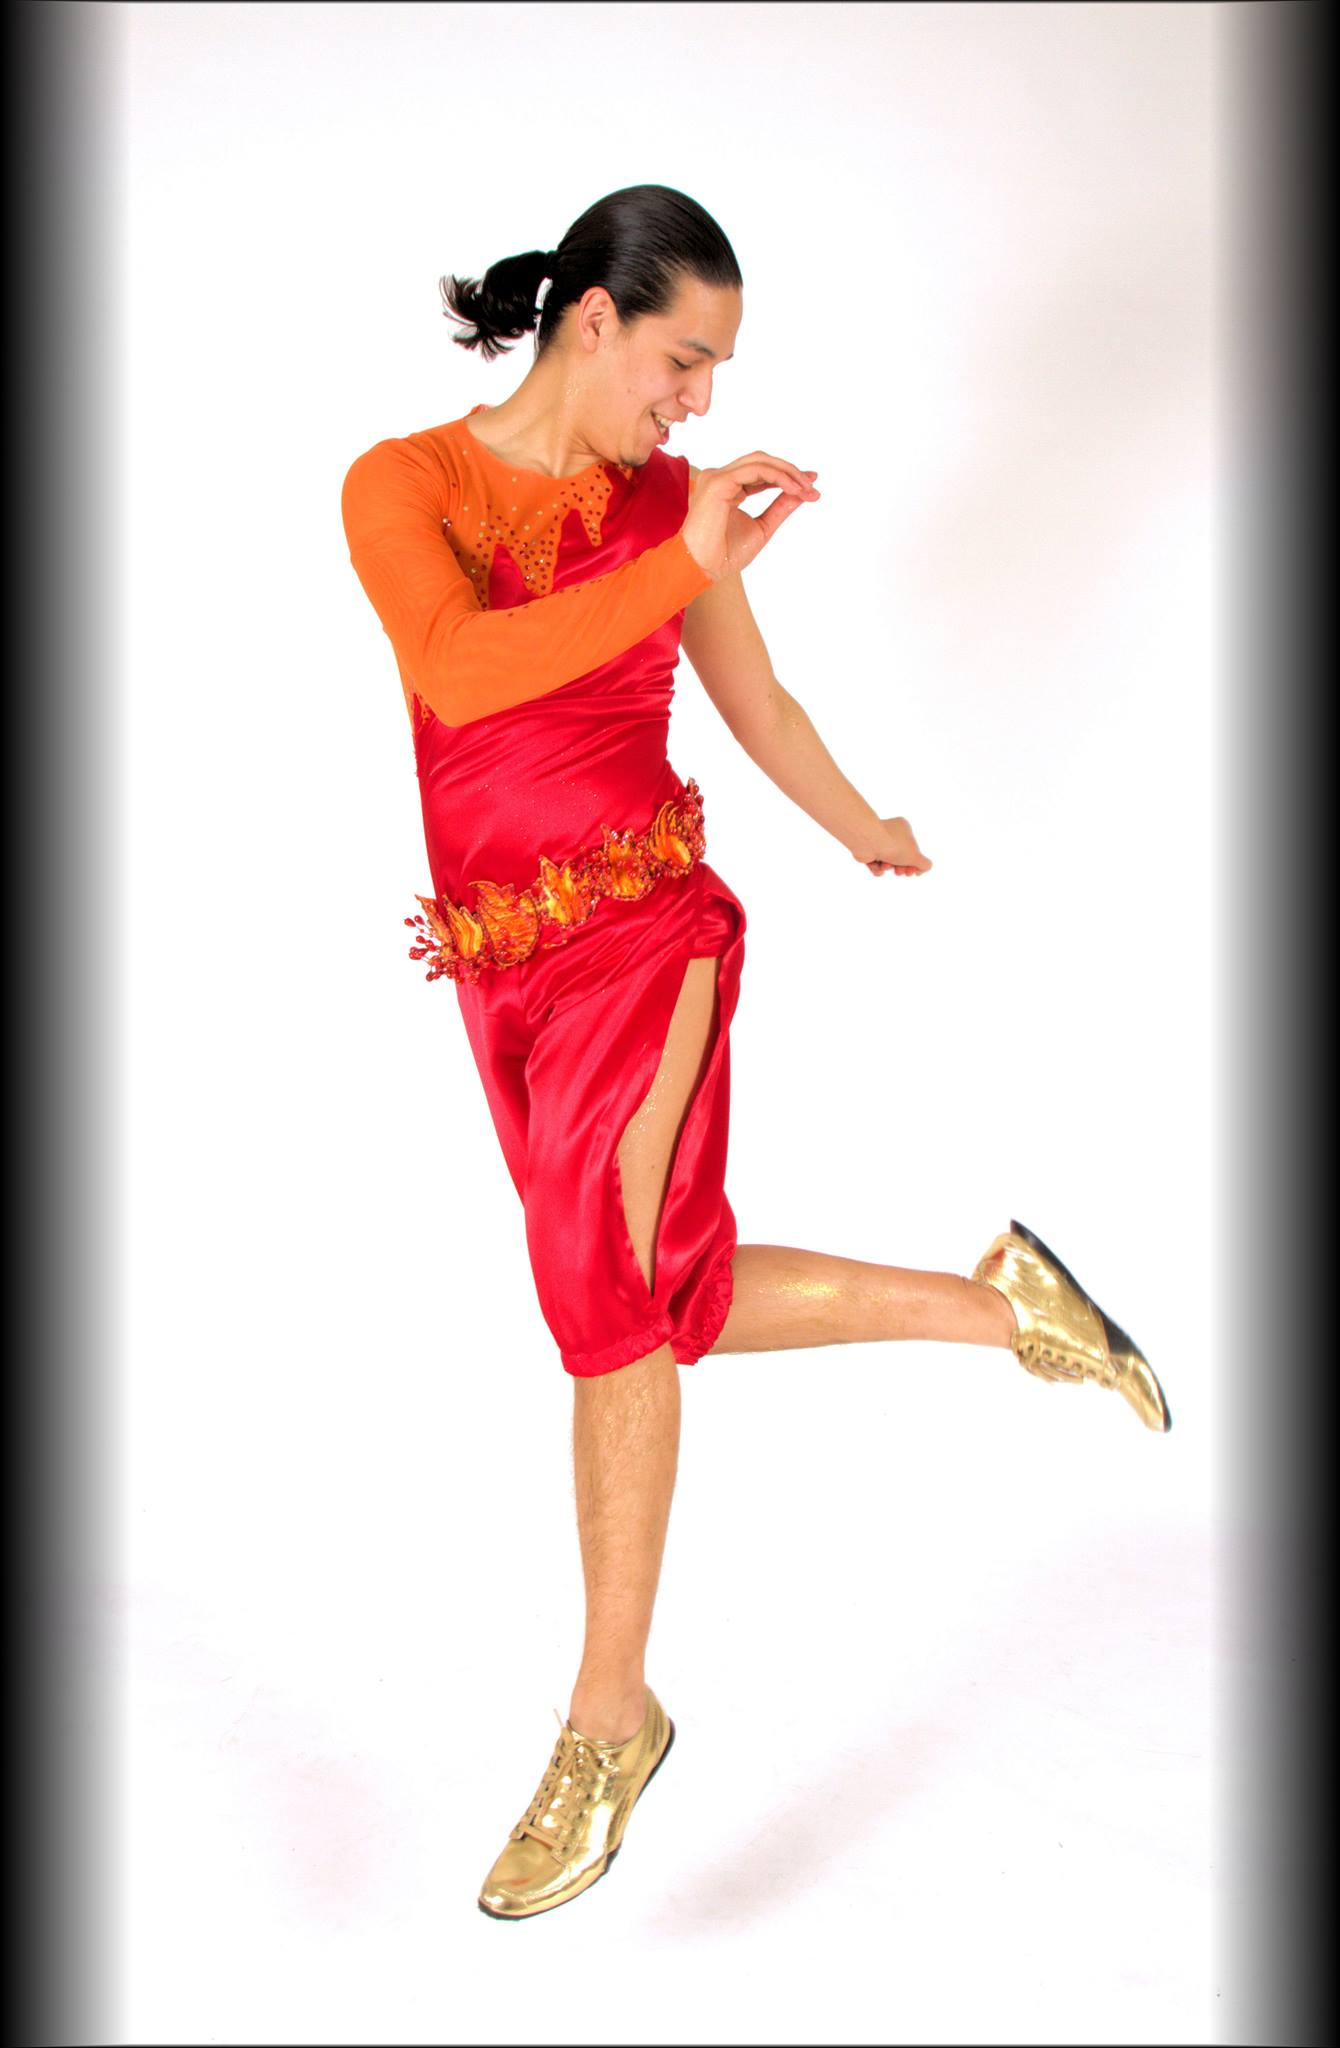 Sal Maktoub Vanegas performing in Sirrom's show this Saturday at Houston City Dance on West Clay Street